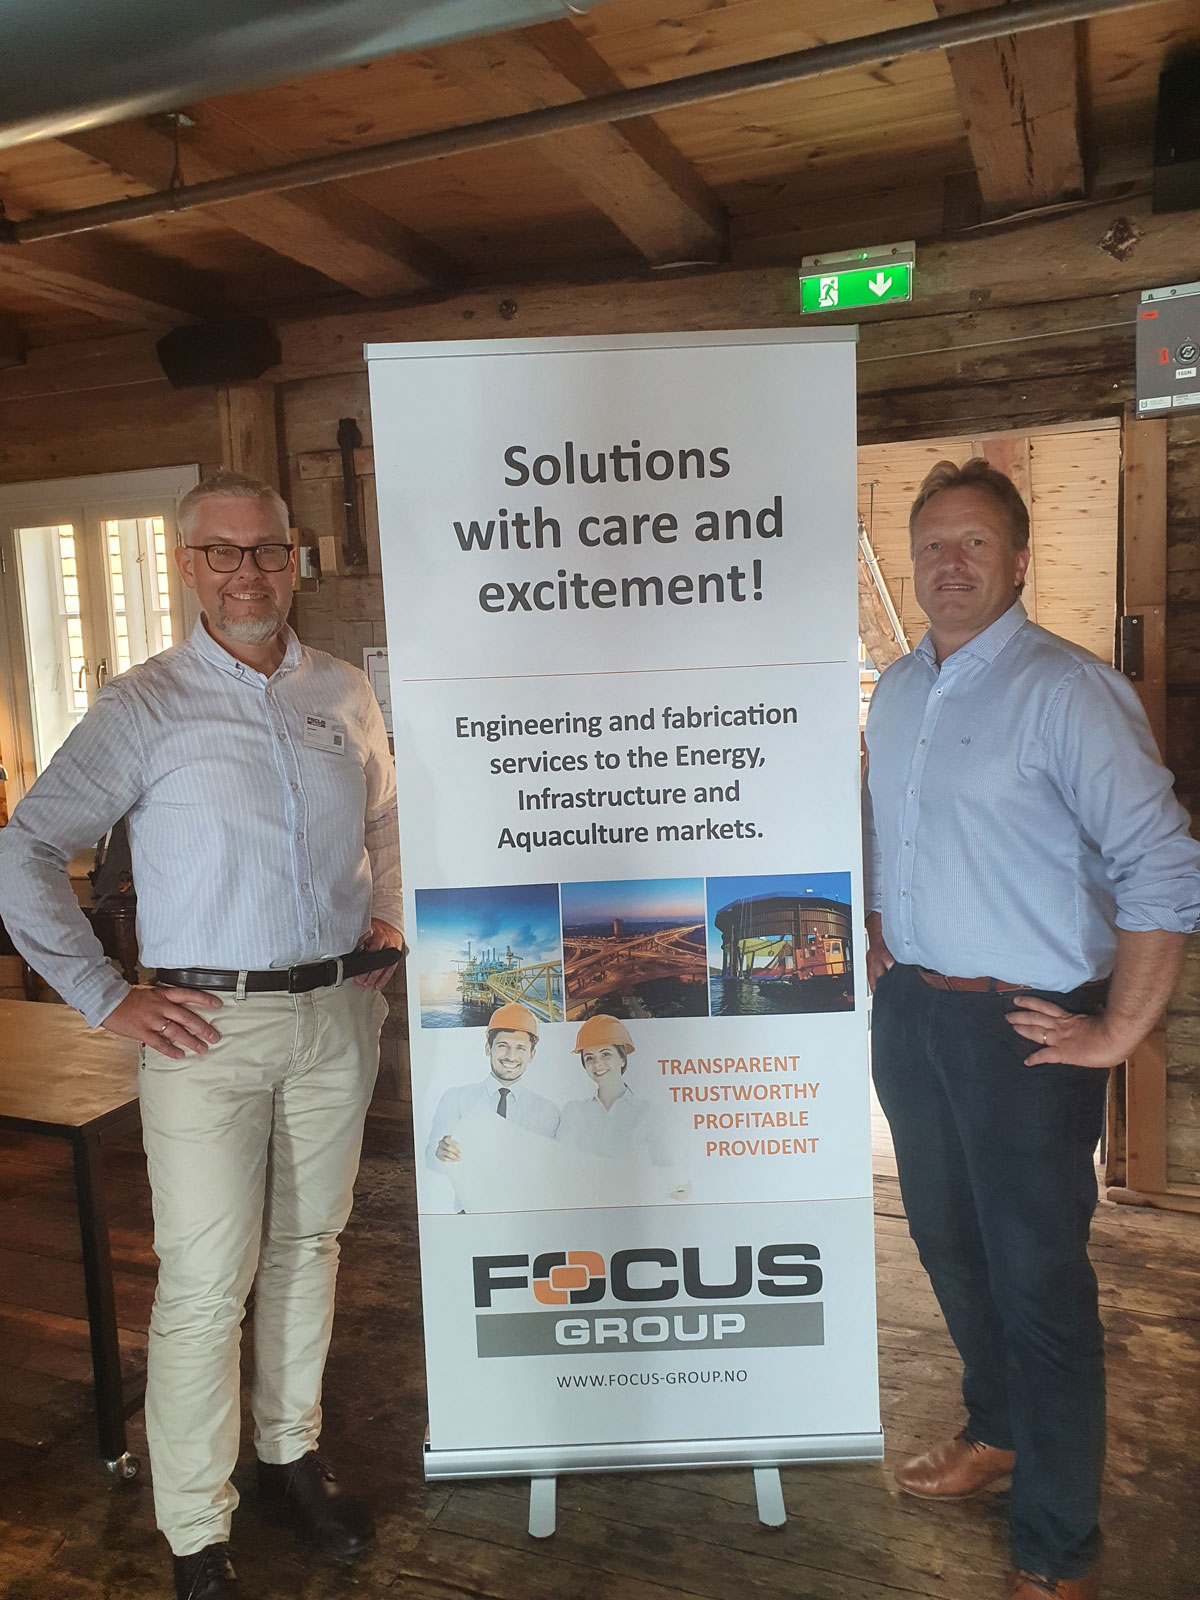 (Photo: Focus Engineering) From left Mr. Tore Bjørkås, CEO of Focus Engineering and Mr. Kristian Utkilen, Managing Director of Aragon, ready to proceed after a great kick-off in Bergen this week.